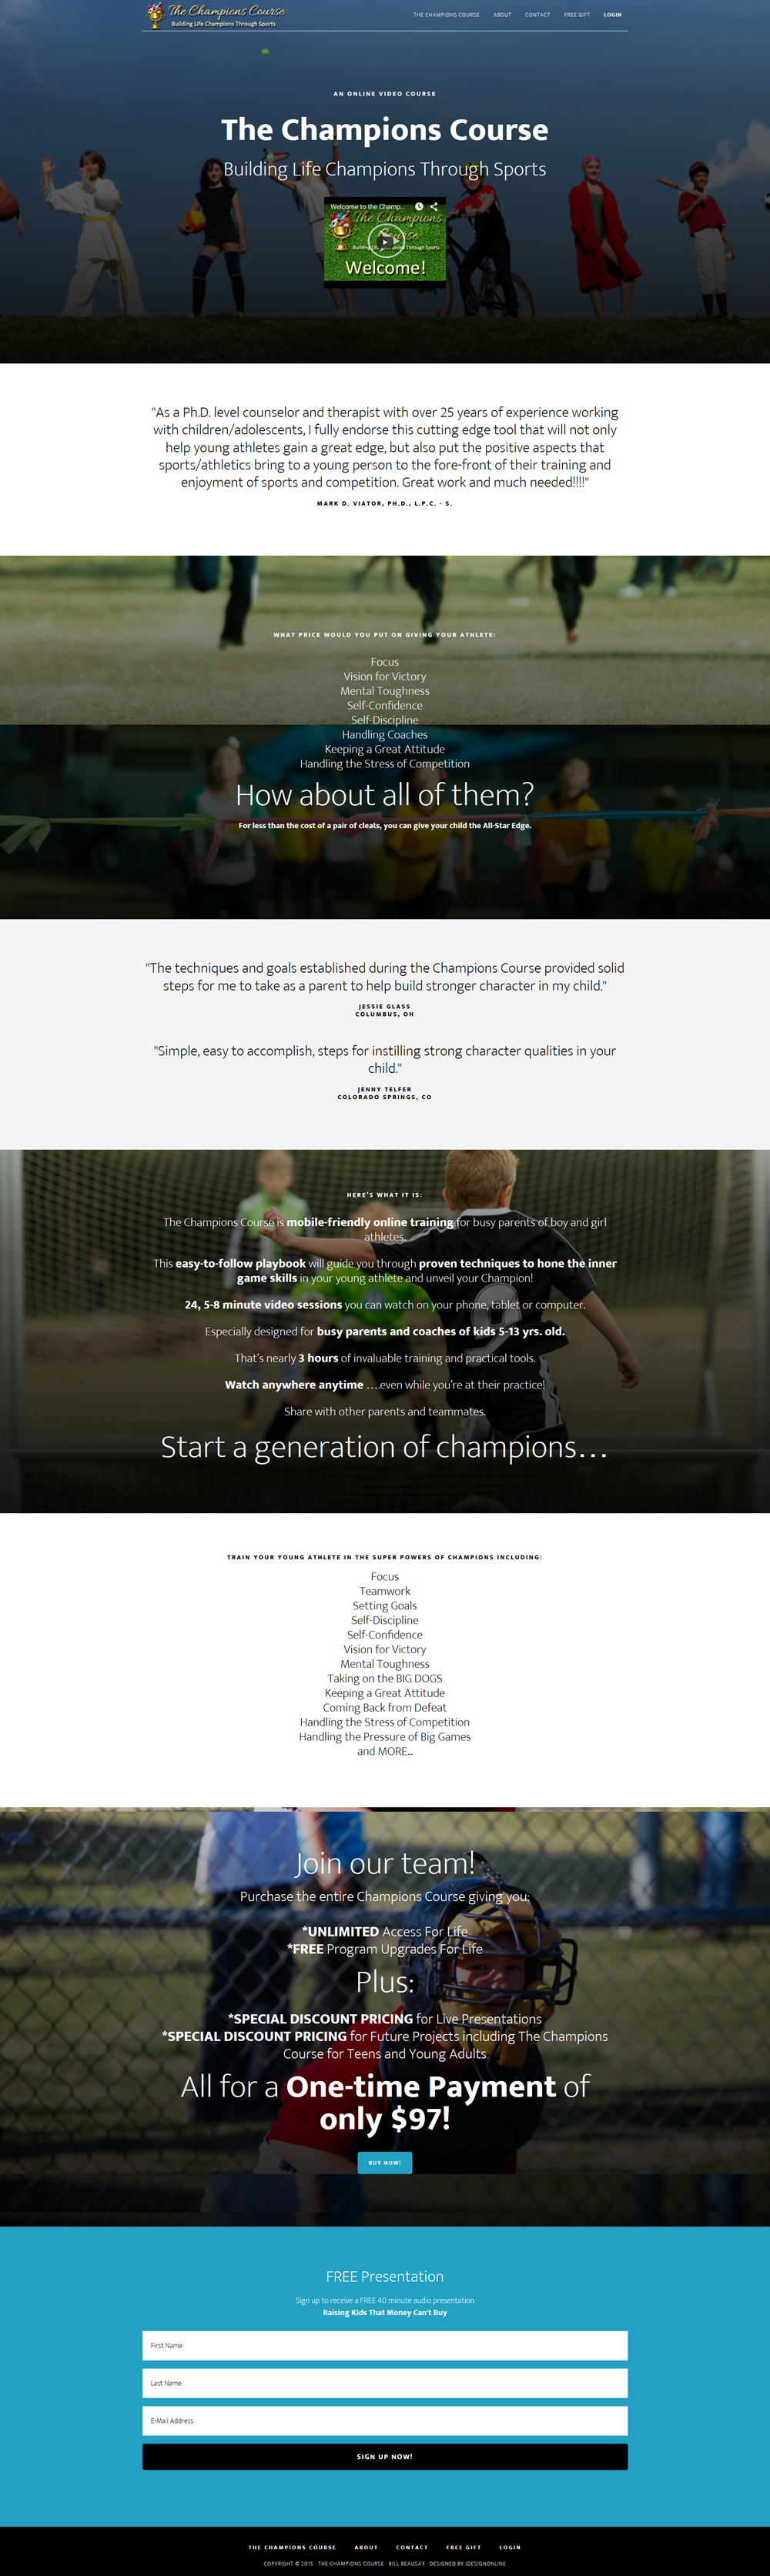 The Champions Course WordPress Website